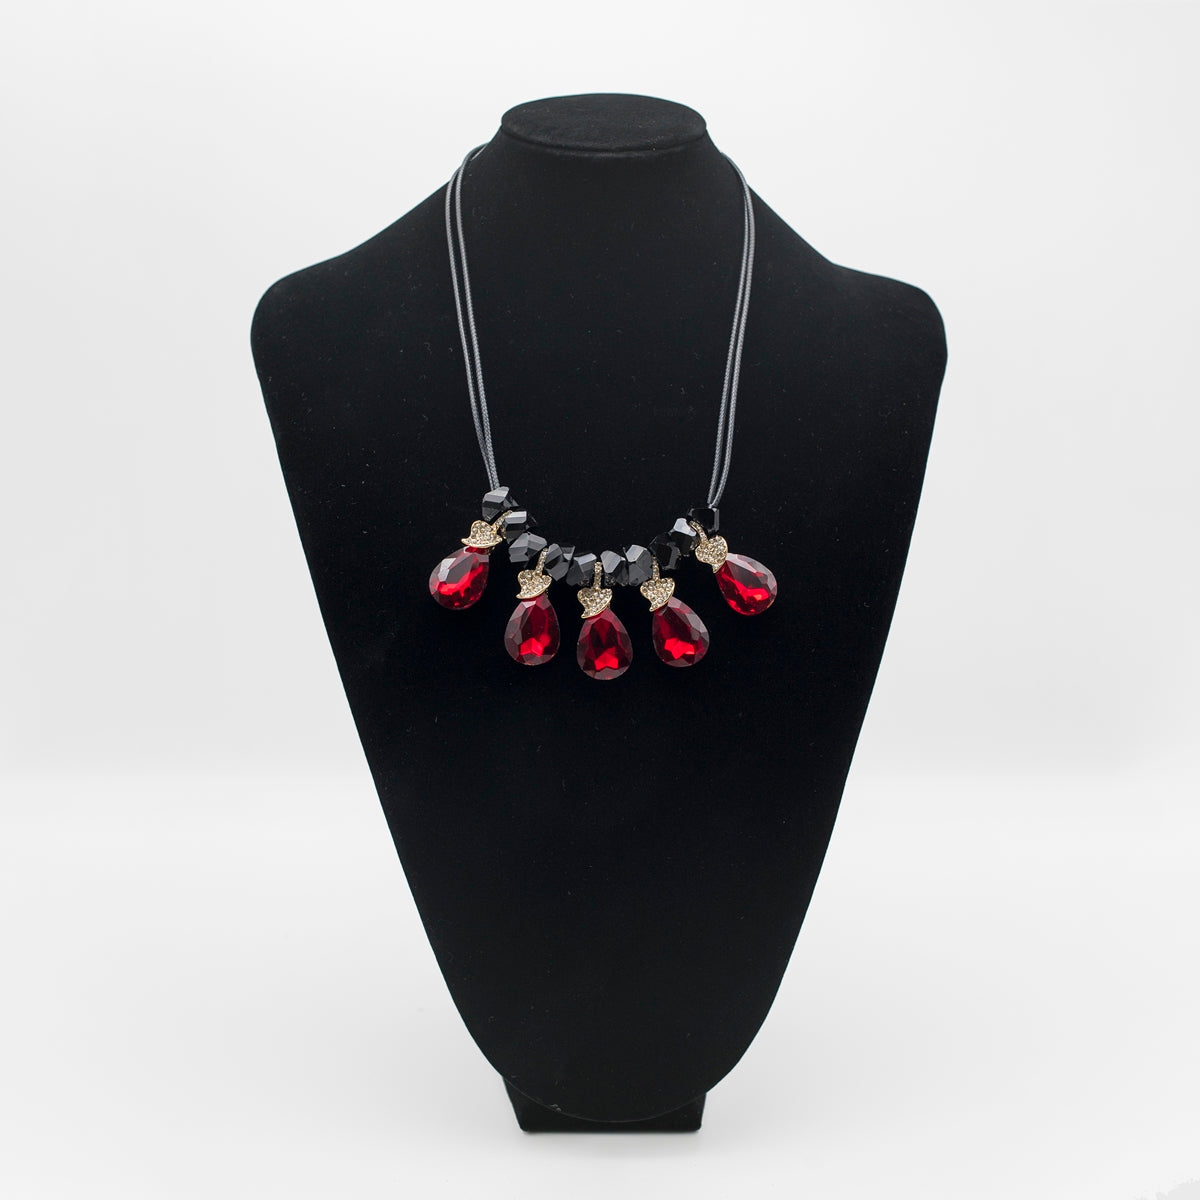 Sparkling Drops Colored Necklace - Kiyara